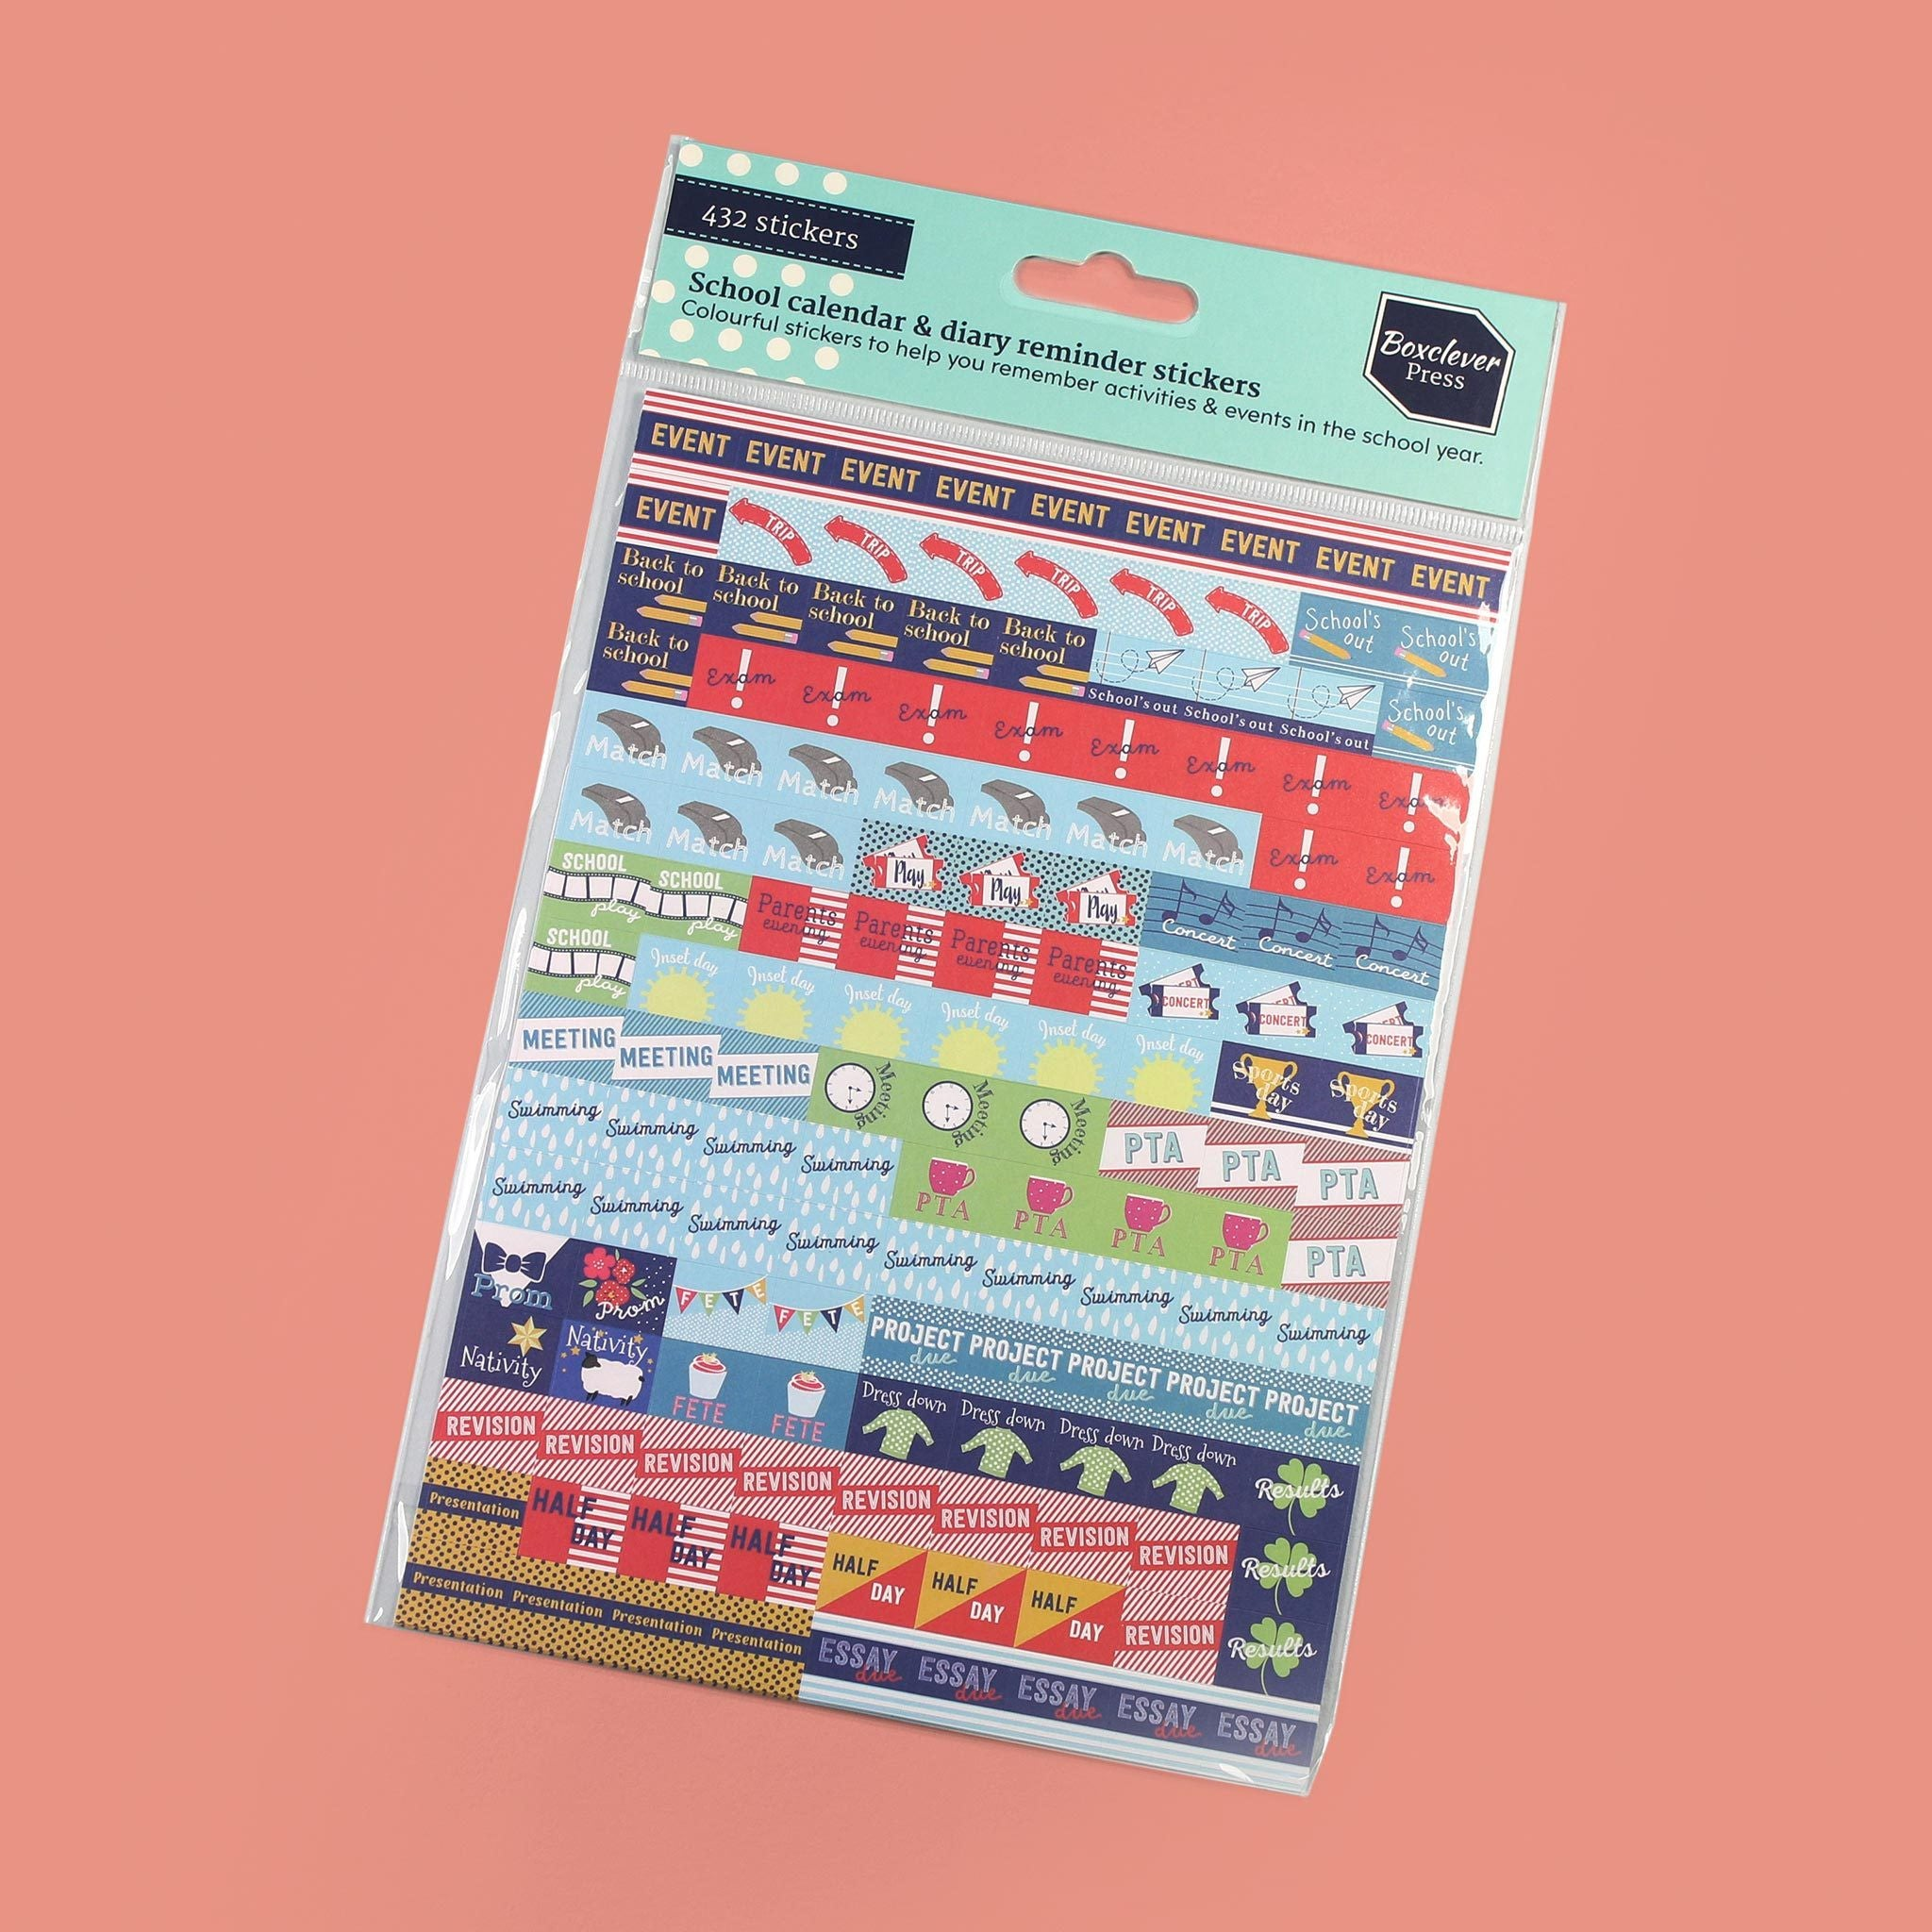 An image of School Stickers I Diary, planner and calendar I Boxclever Press